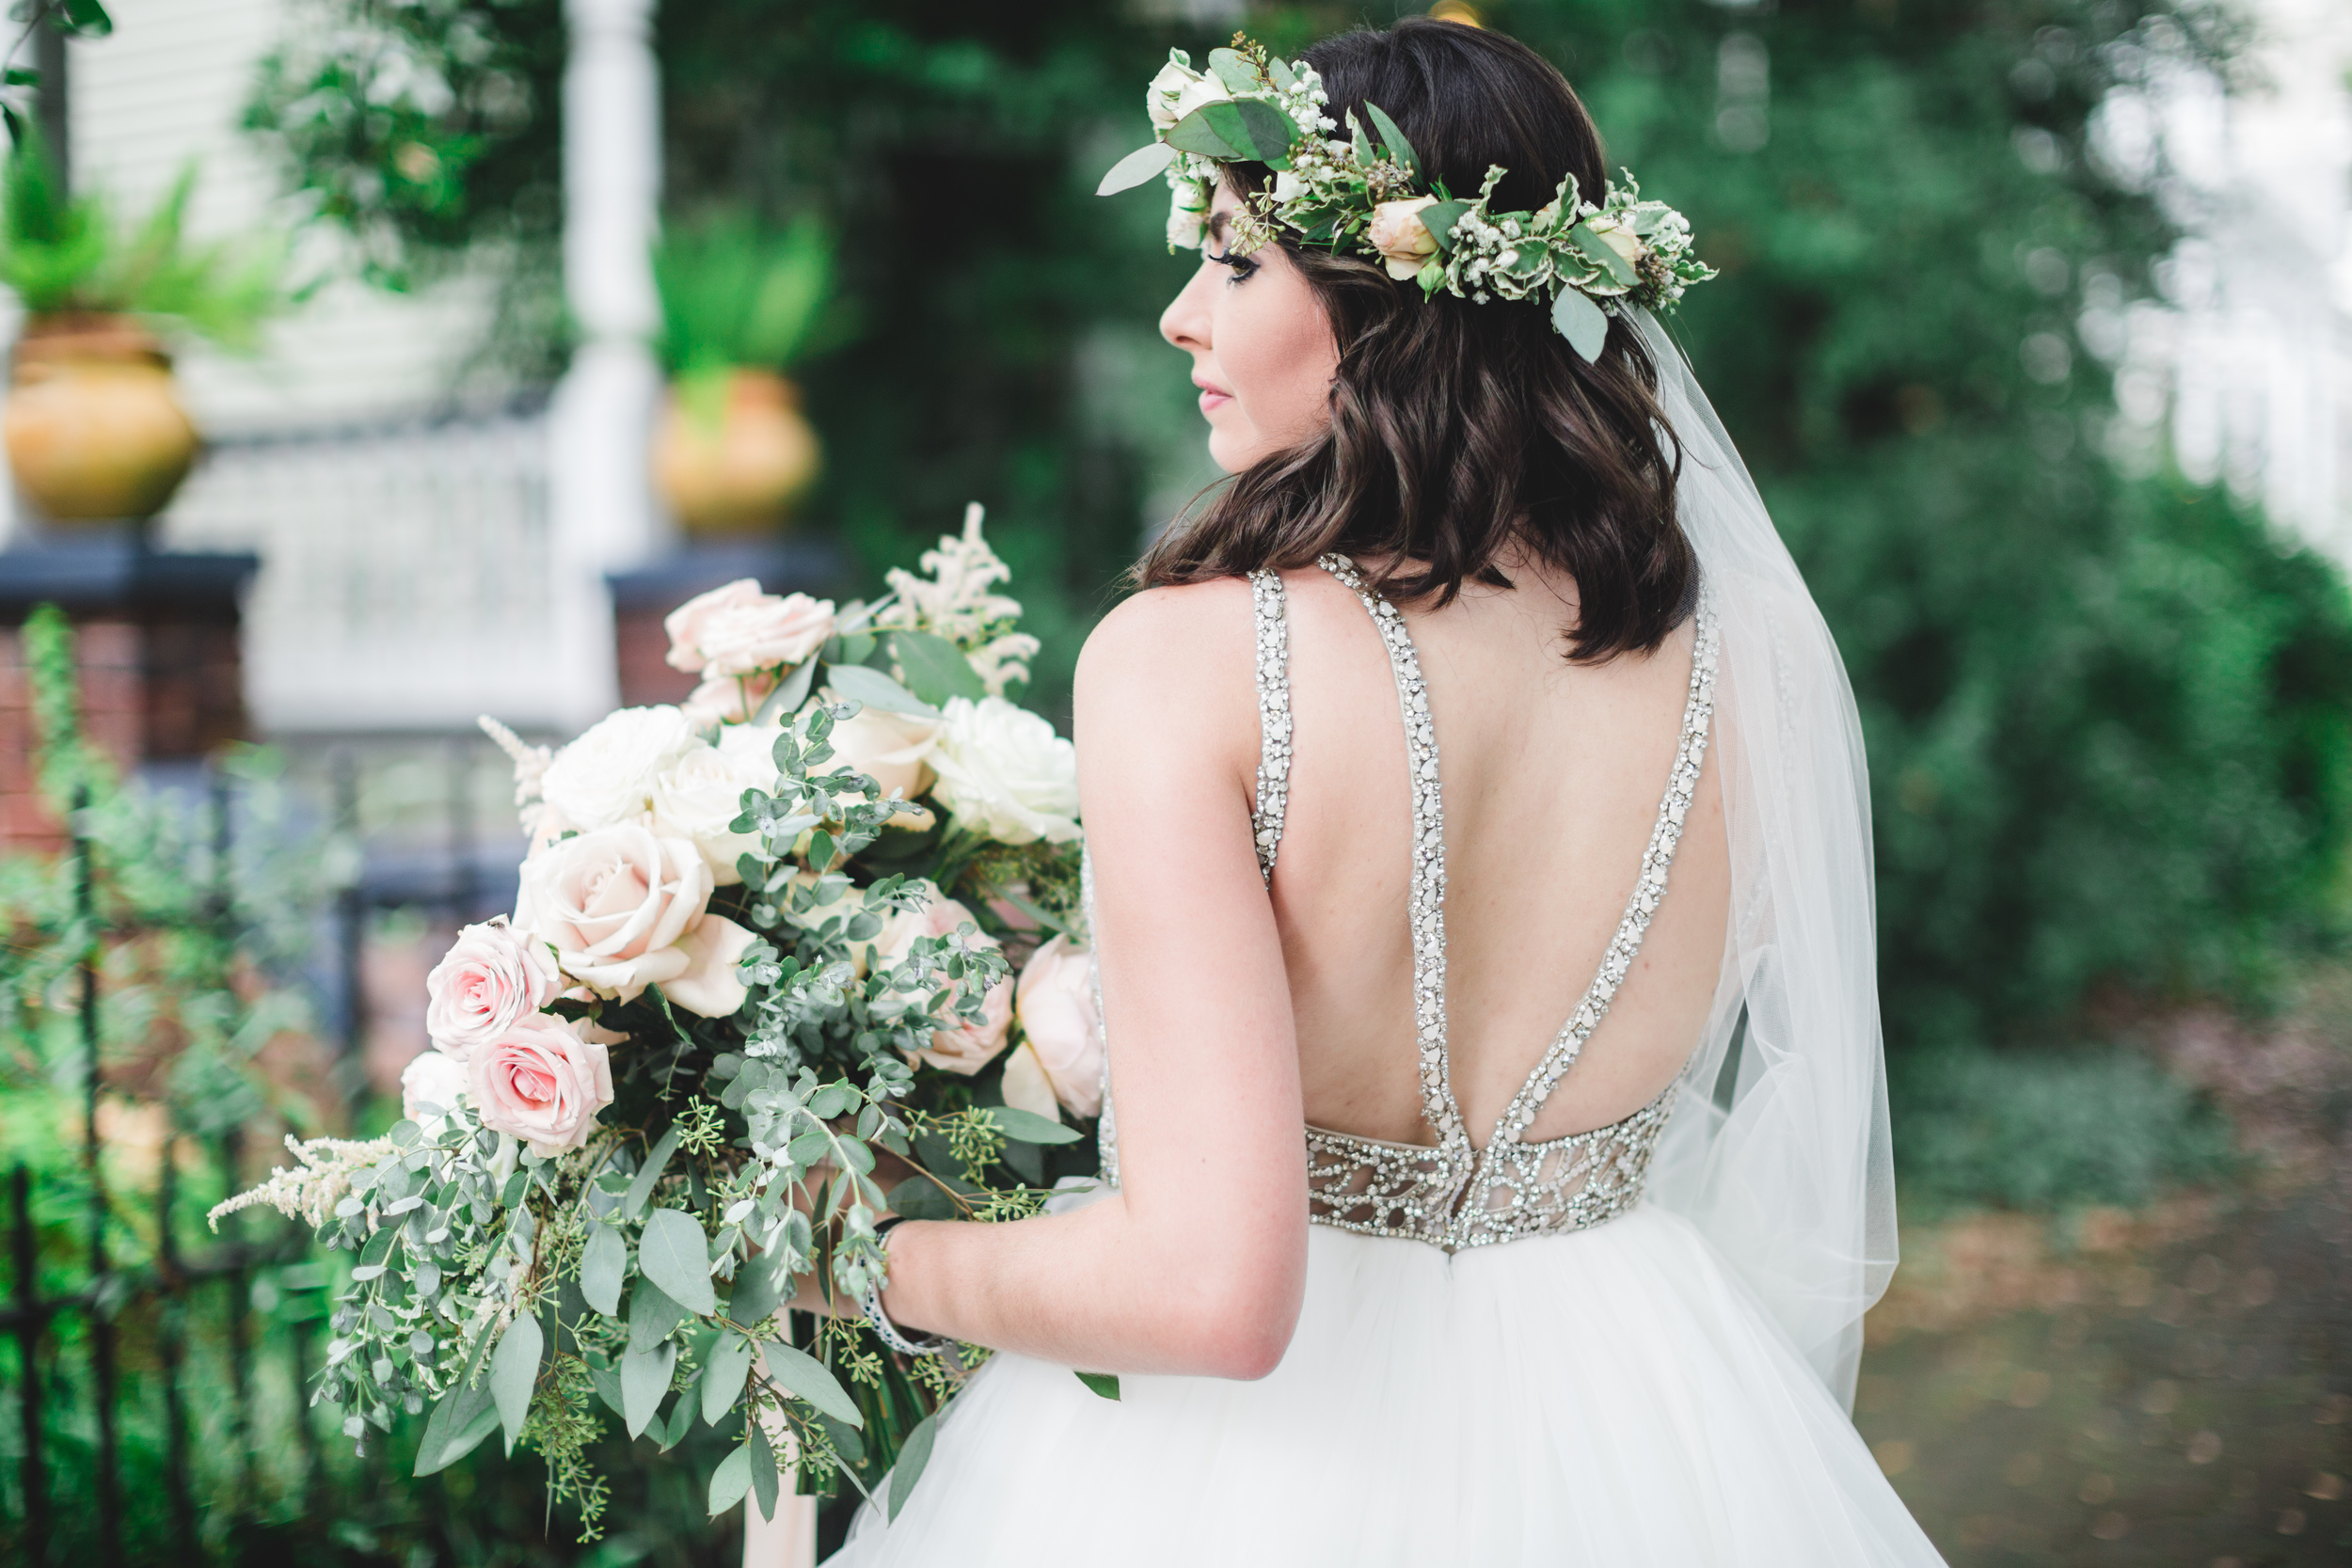 daniela-and-pedro-wedding-izzy-hudgins-photography-a-to-zinnias-whitfield-square-charles-h-morris-center-wedding-ivoyy-and-beau-bridal-boutique-dorie-hayley-paige-savannah-wedding-planner-savannah-bridal-boutique-savannah-weddings-17.jpg